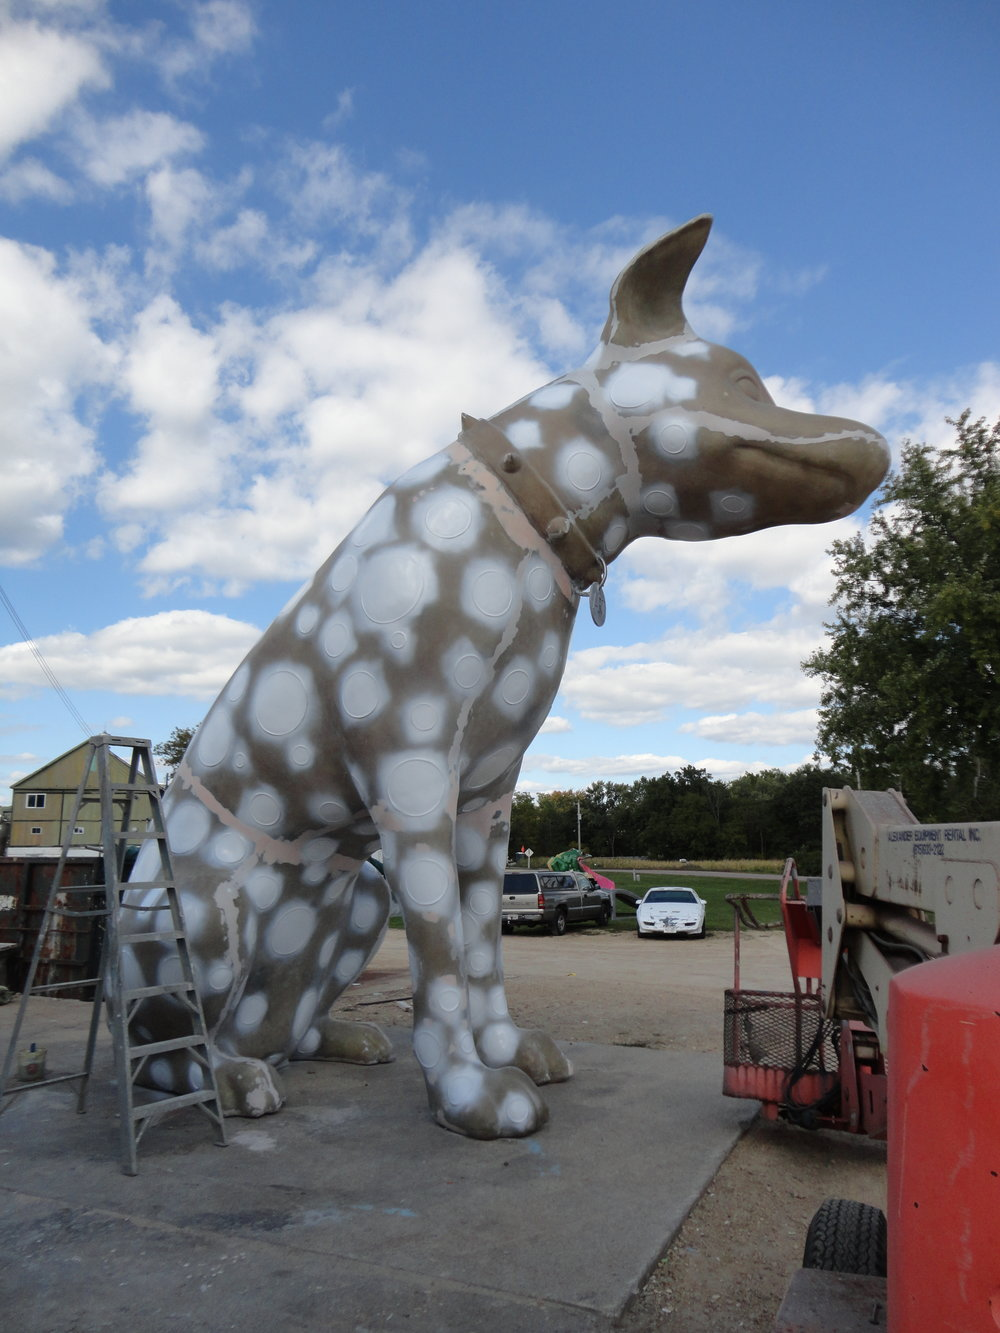 Shreveport_Art the Dalmation_Shreveport Regional Arts Council_Public Art Services_J Grant Projects_2.JPG